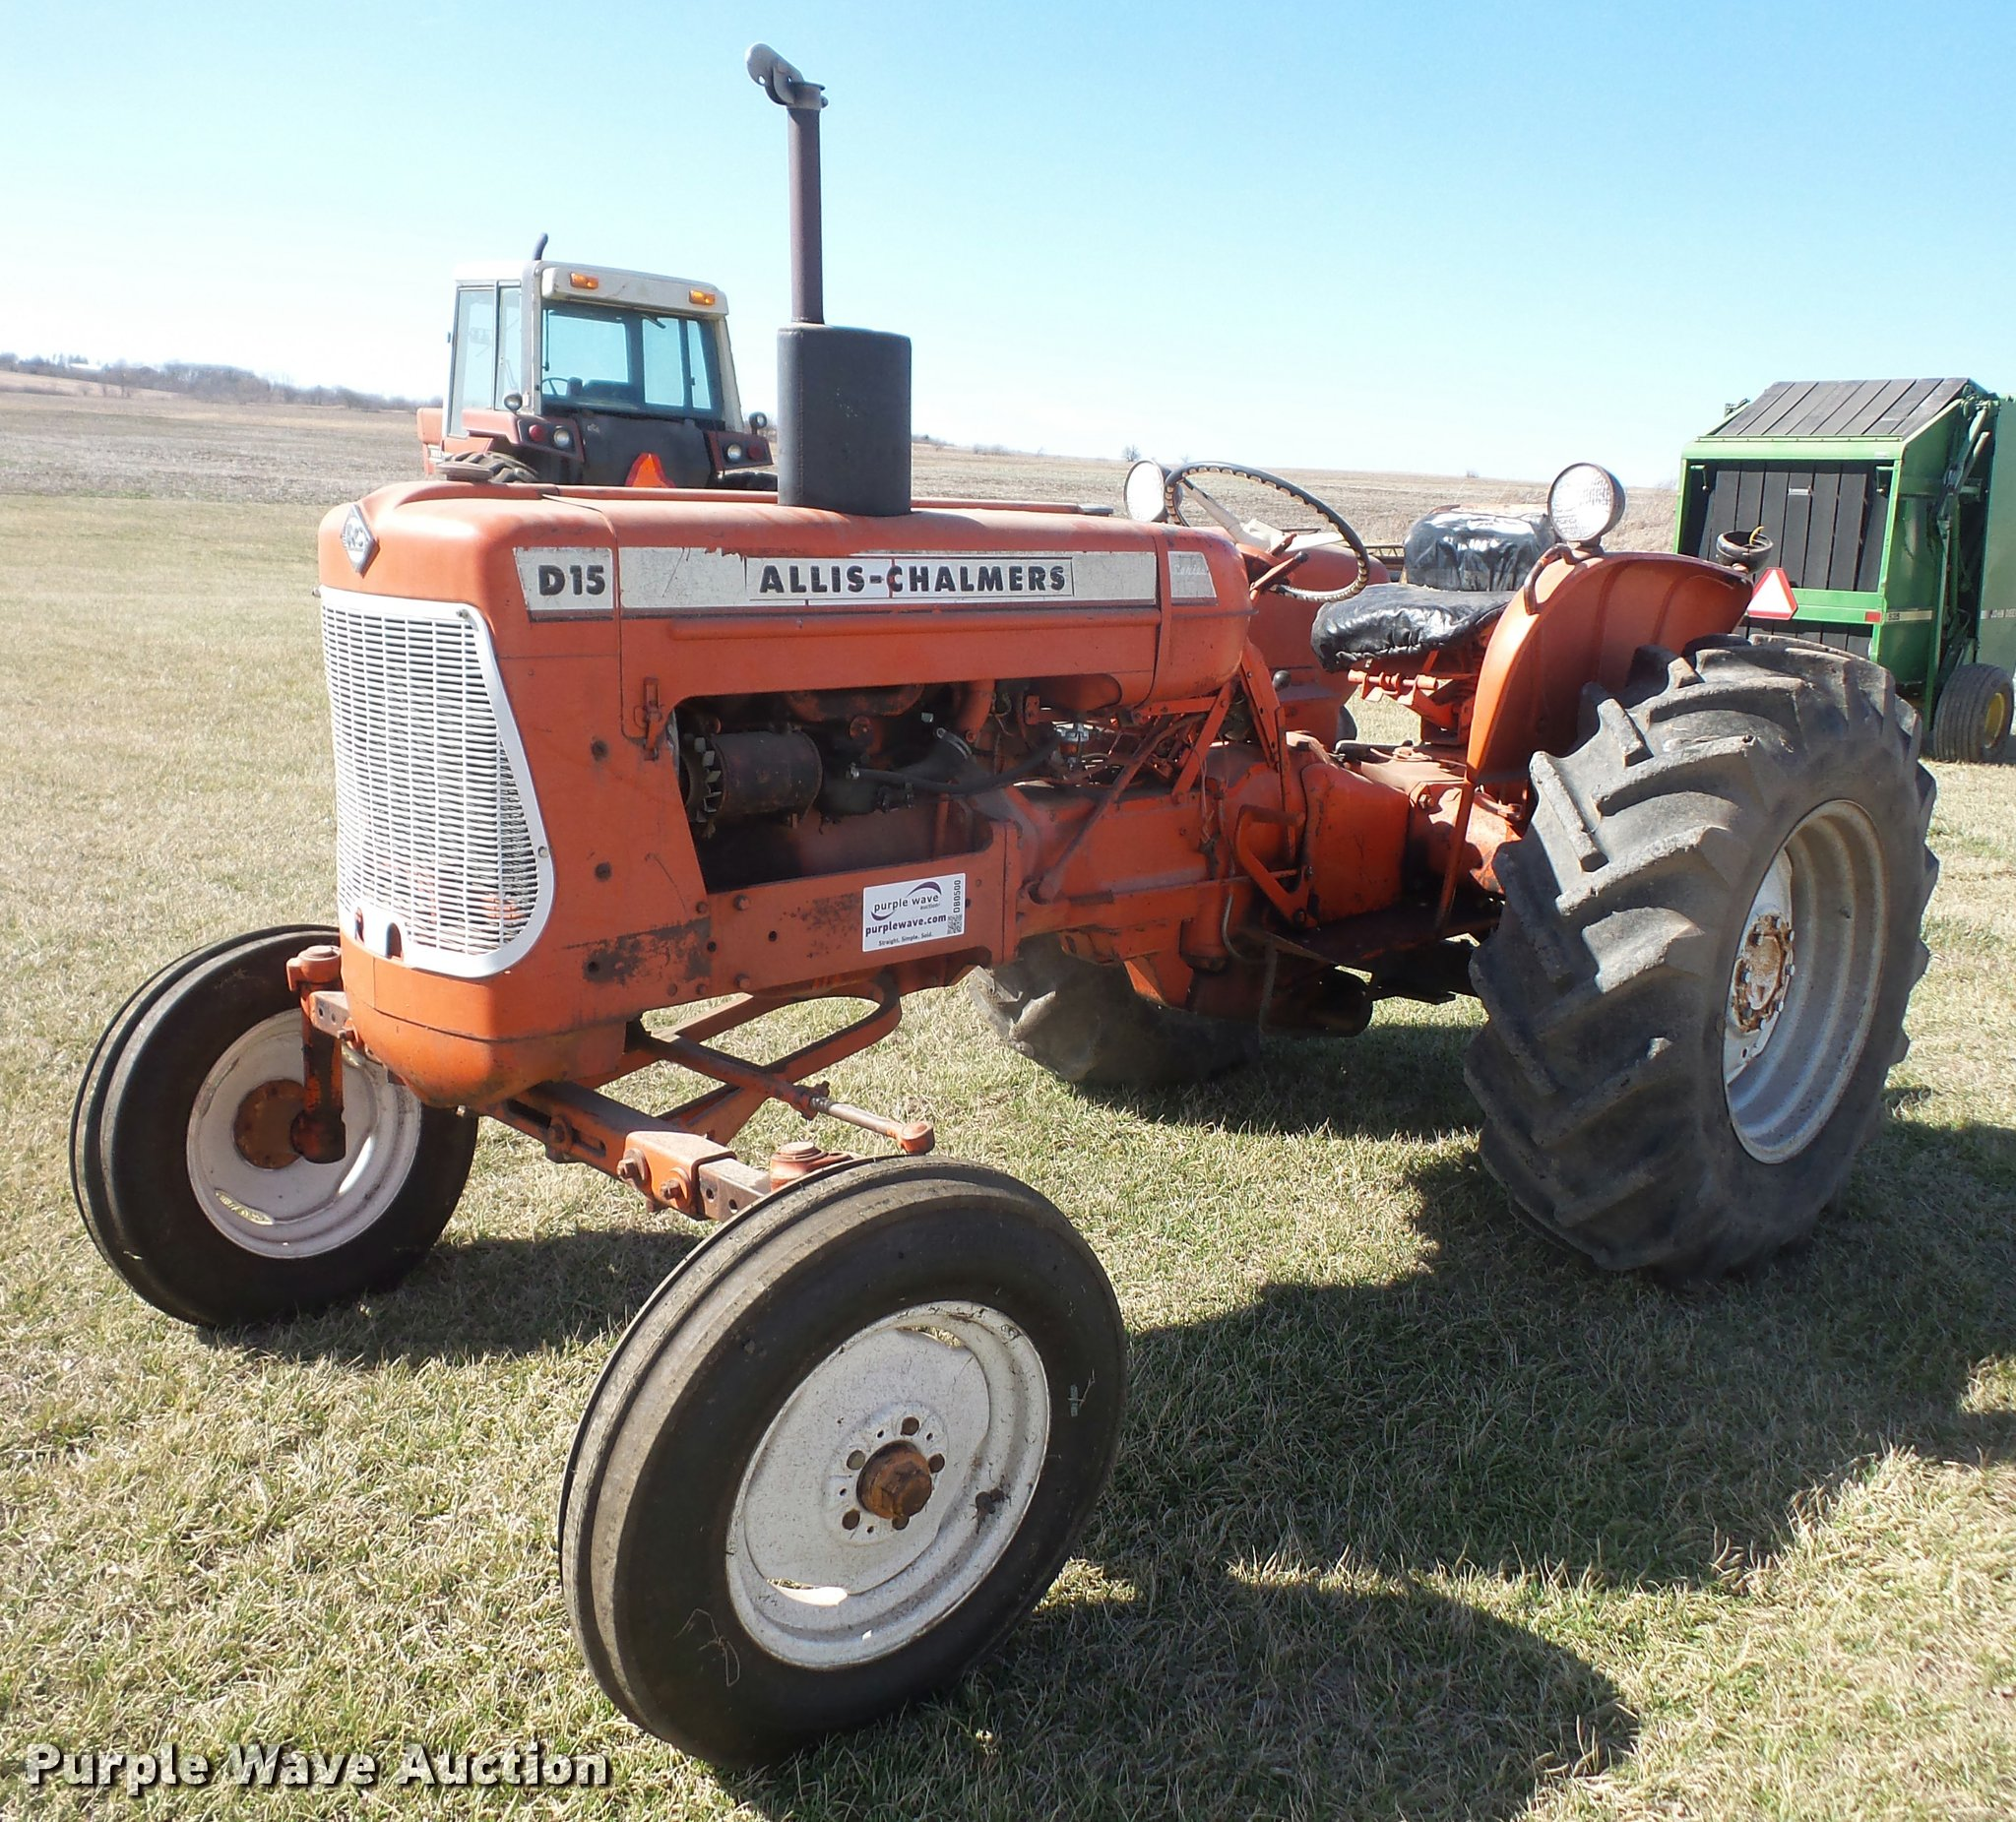 1961 Allis Chalmers D15 Series 2 tractor Item DB0500